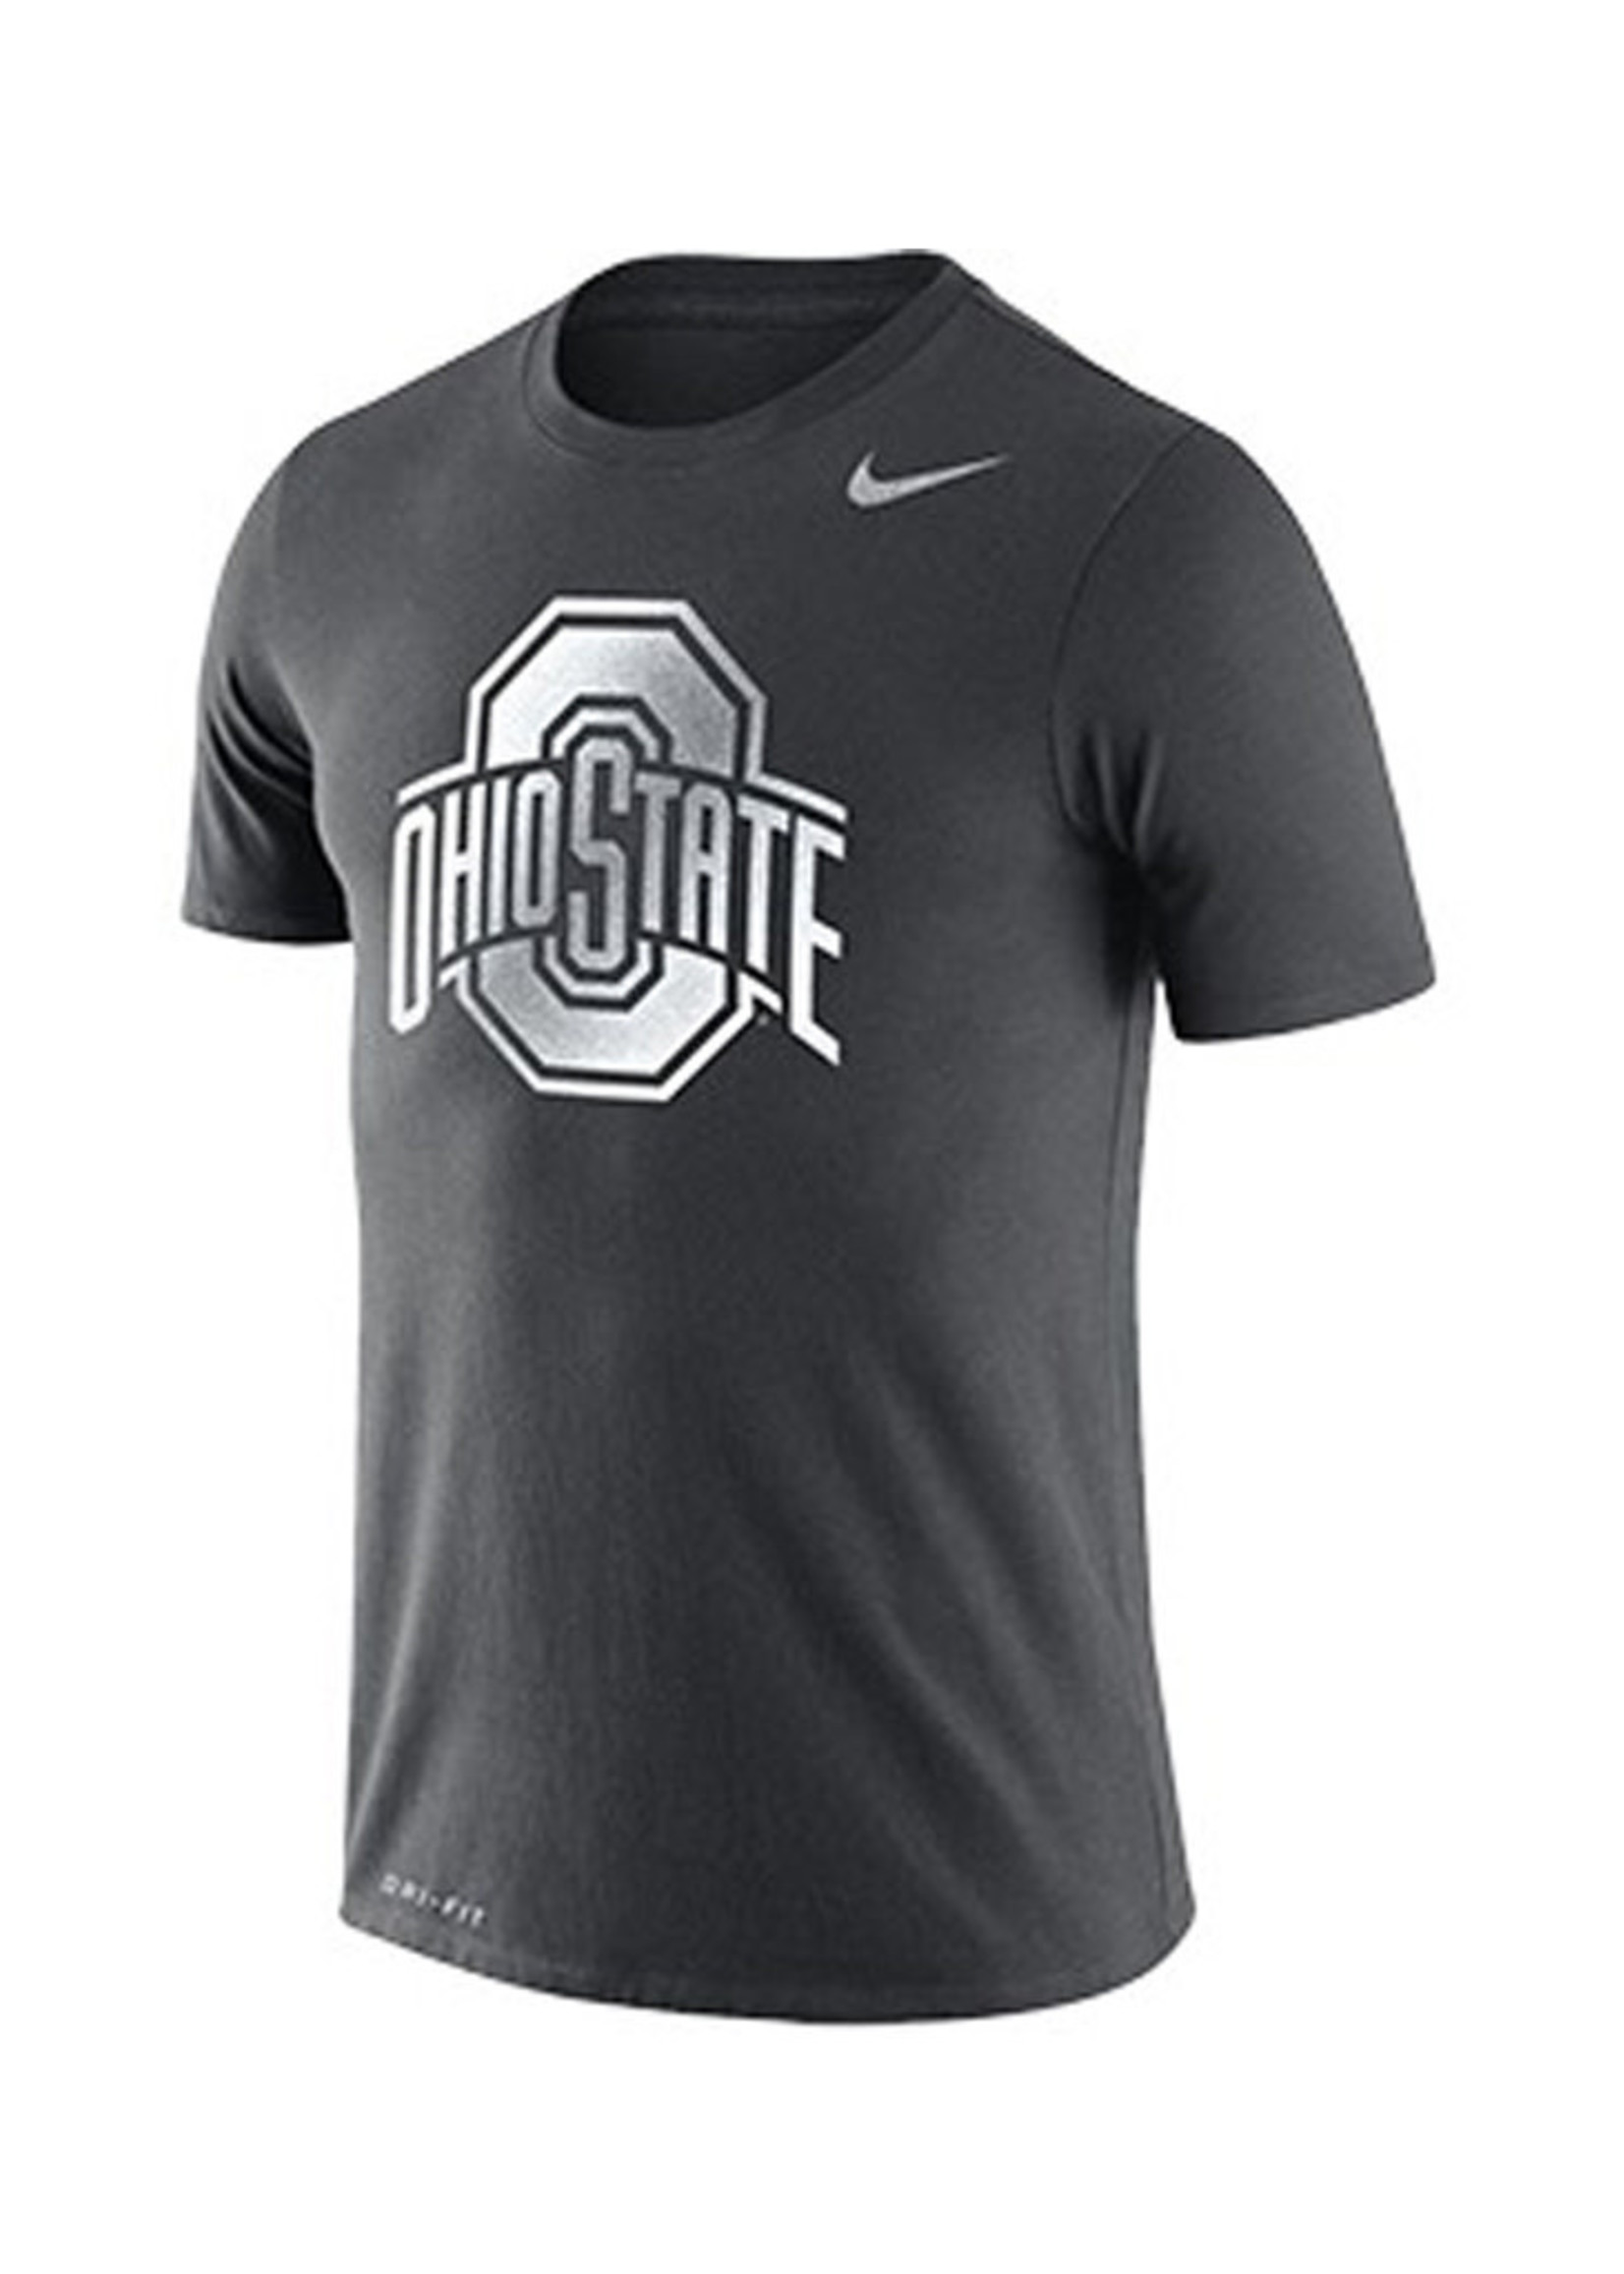 Nike Ohio State University Youth Silver Athetic O Tee